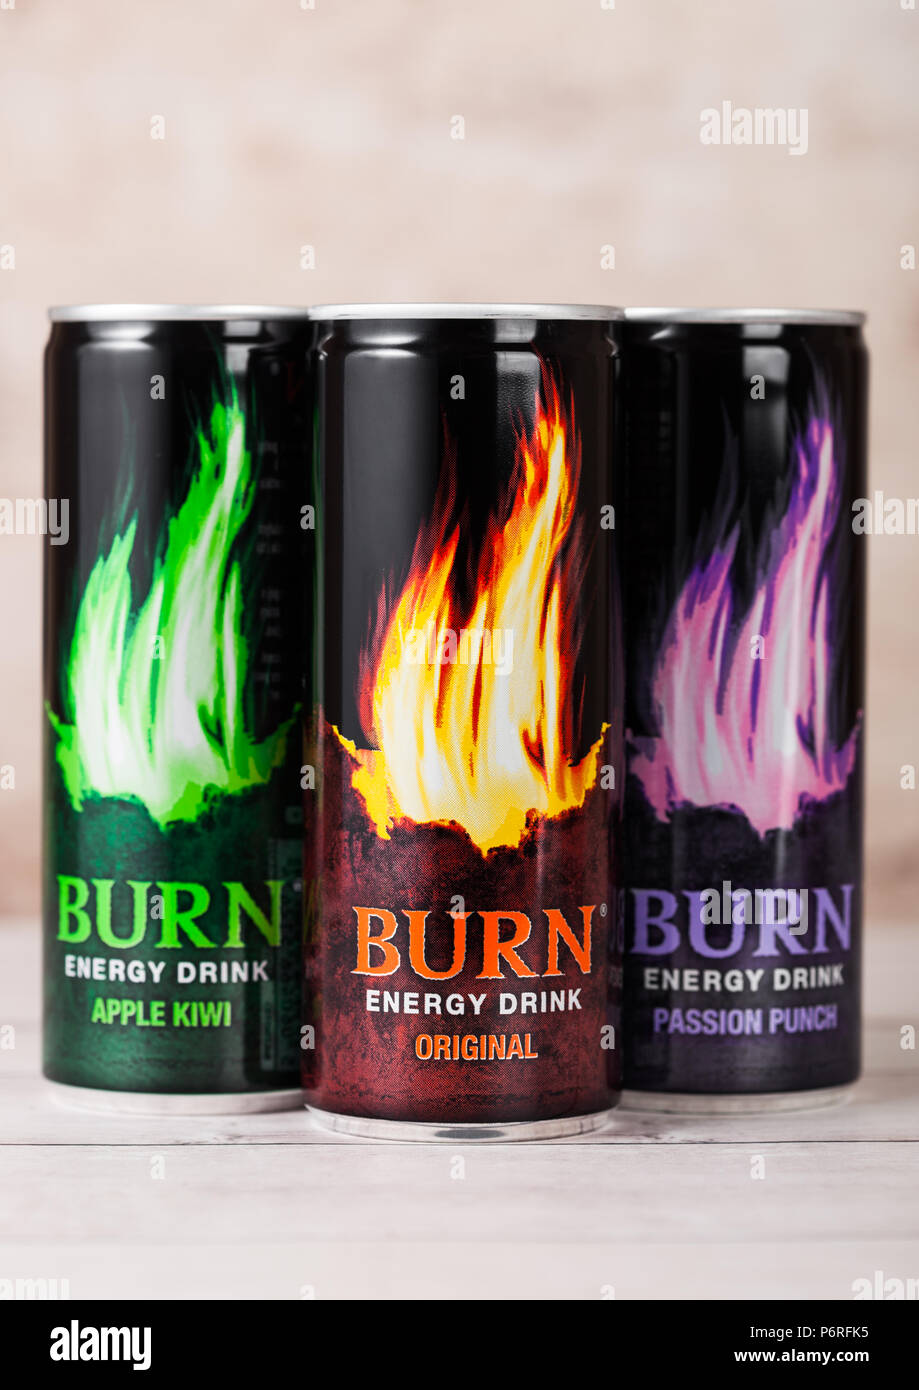 LONDON, UK - JUNE 30, 2018: aluminium tins of Burn Energy Drink Original on wooden background. Burn energy is made for keeping eyes open and mind shar - Stock Image